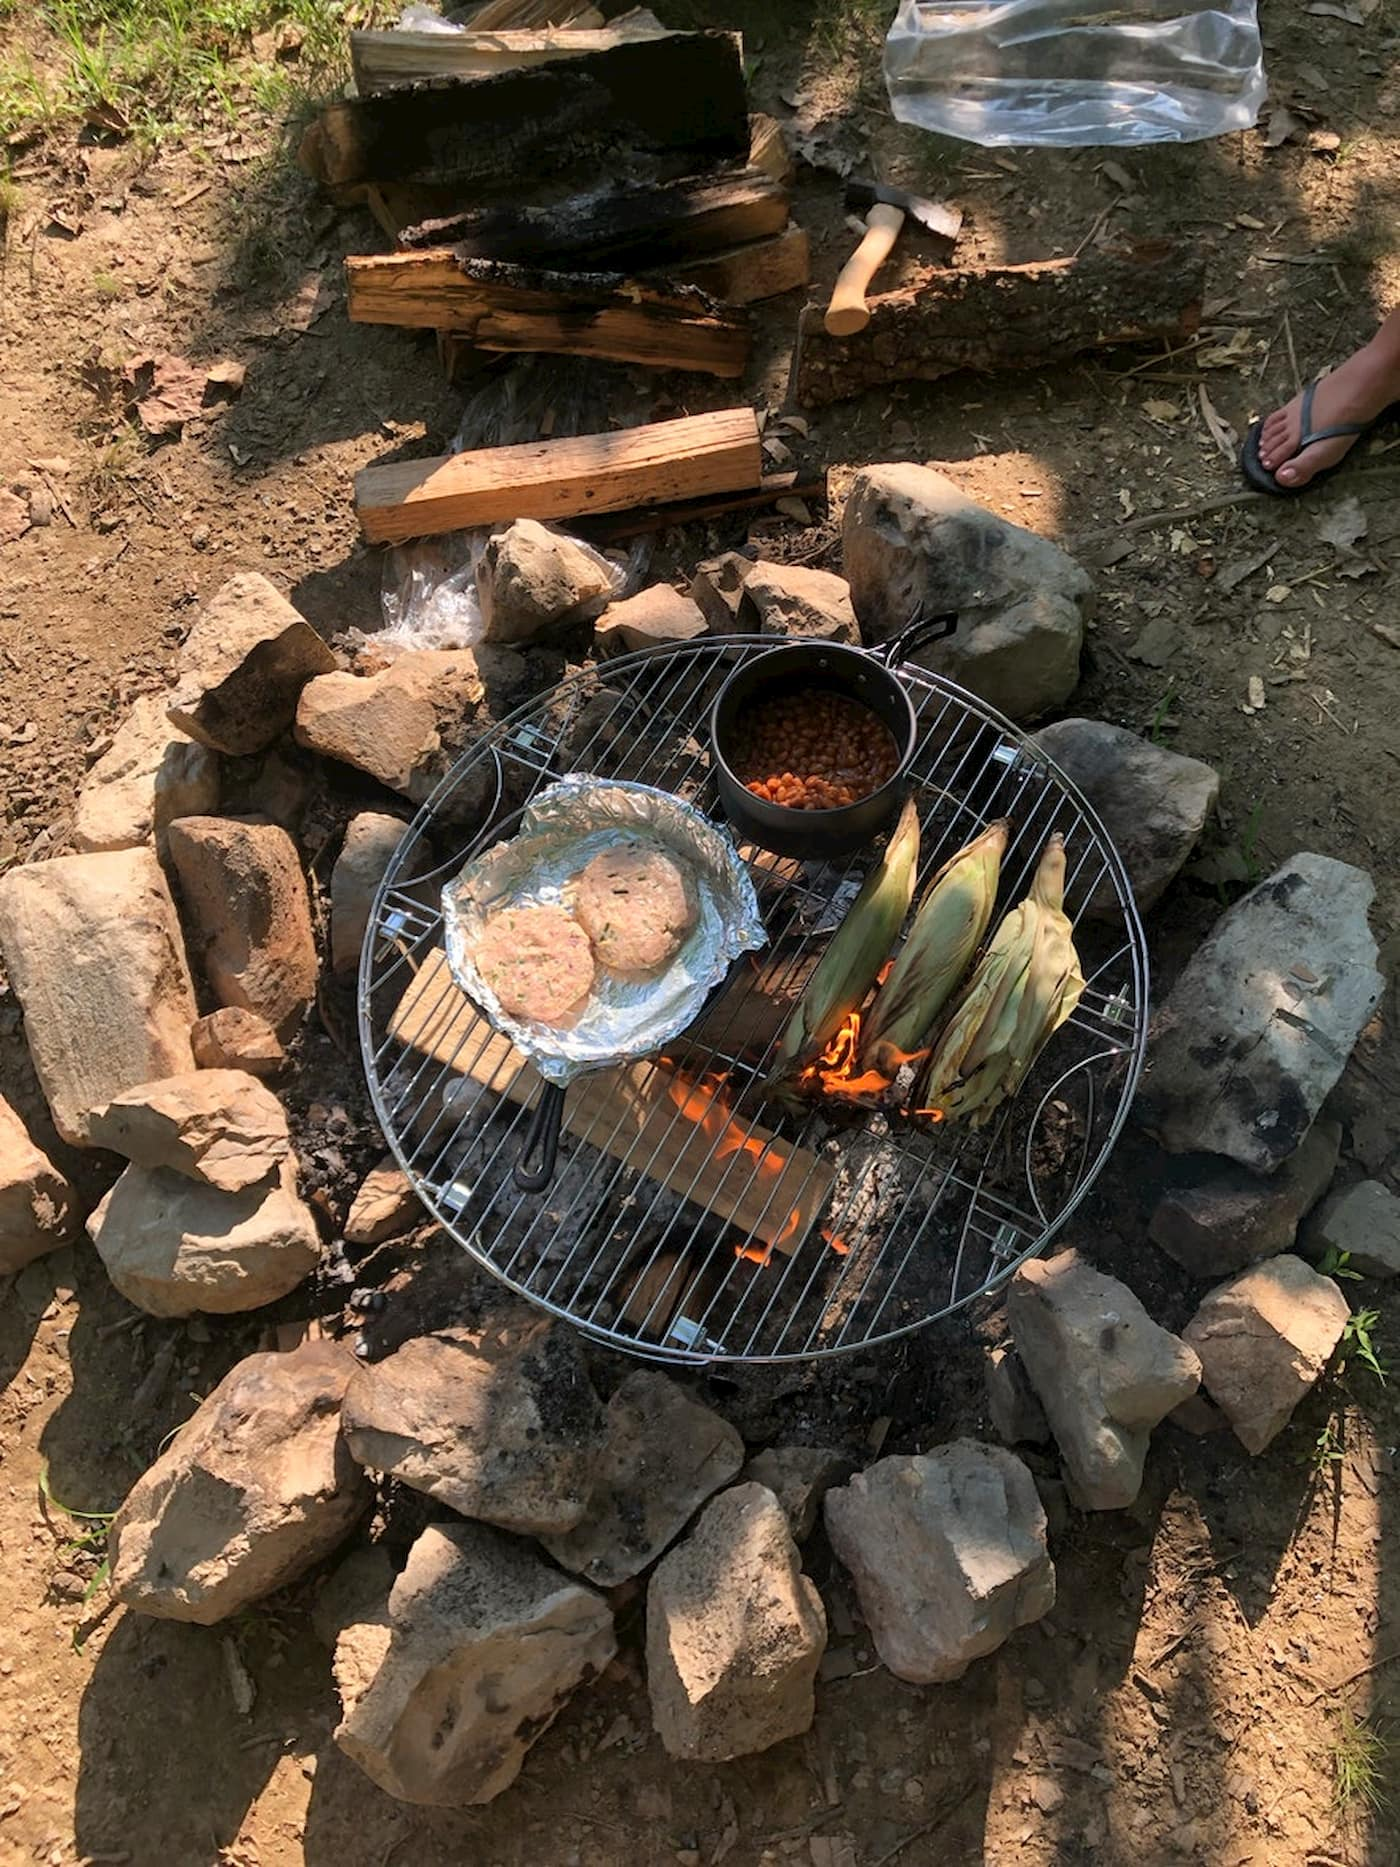 Corn, burgers and beans cooking over a fire pit.